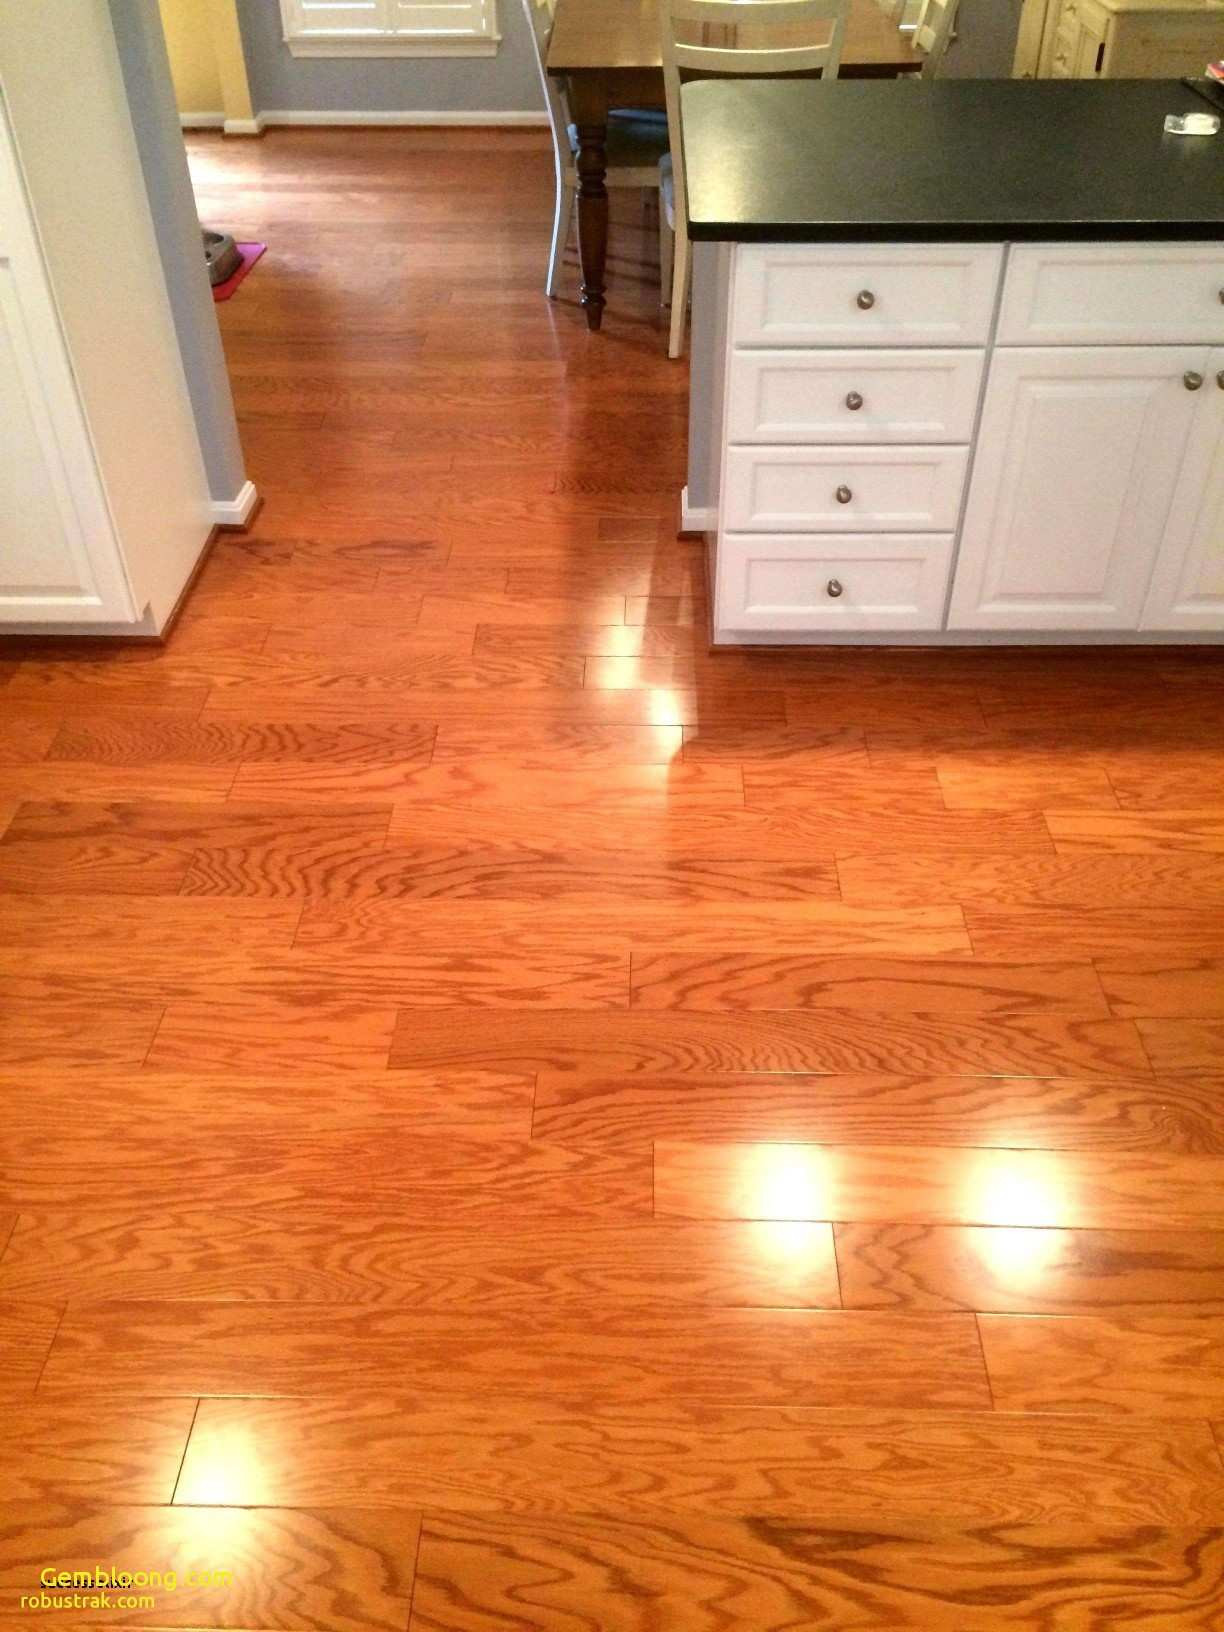 hardwood flooring dark wood of wood for floors facesinnature pertaining to hardwood floors in the kitchen fresh where to buy hardwood flooring inspirational 0d grace place barnegat